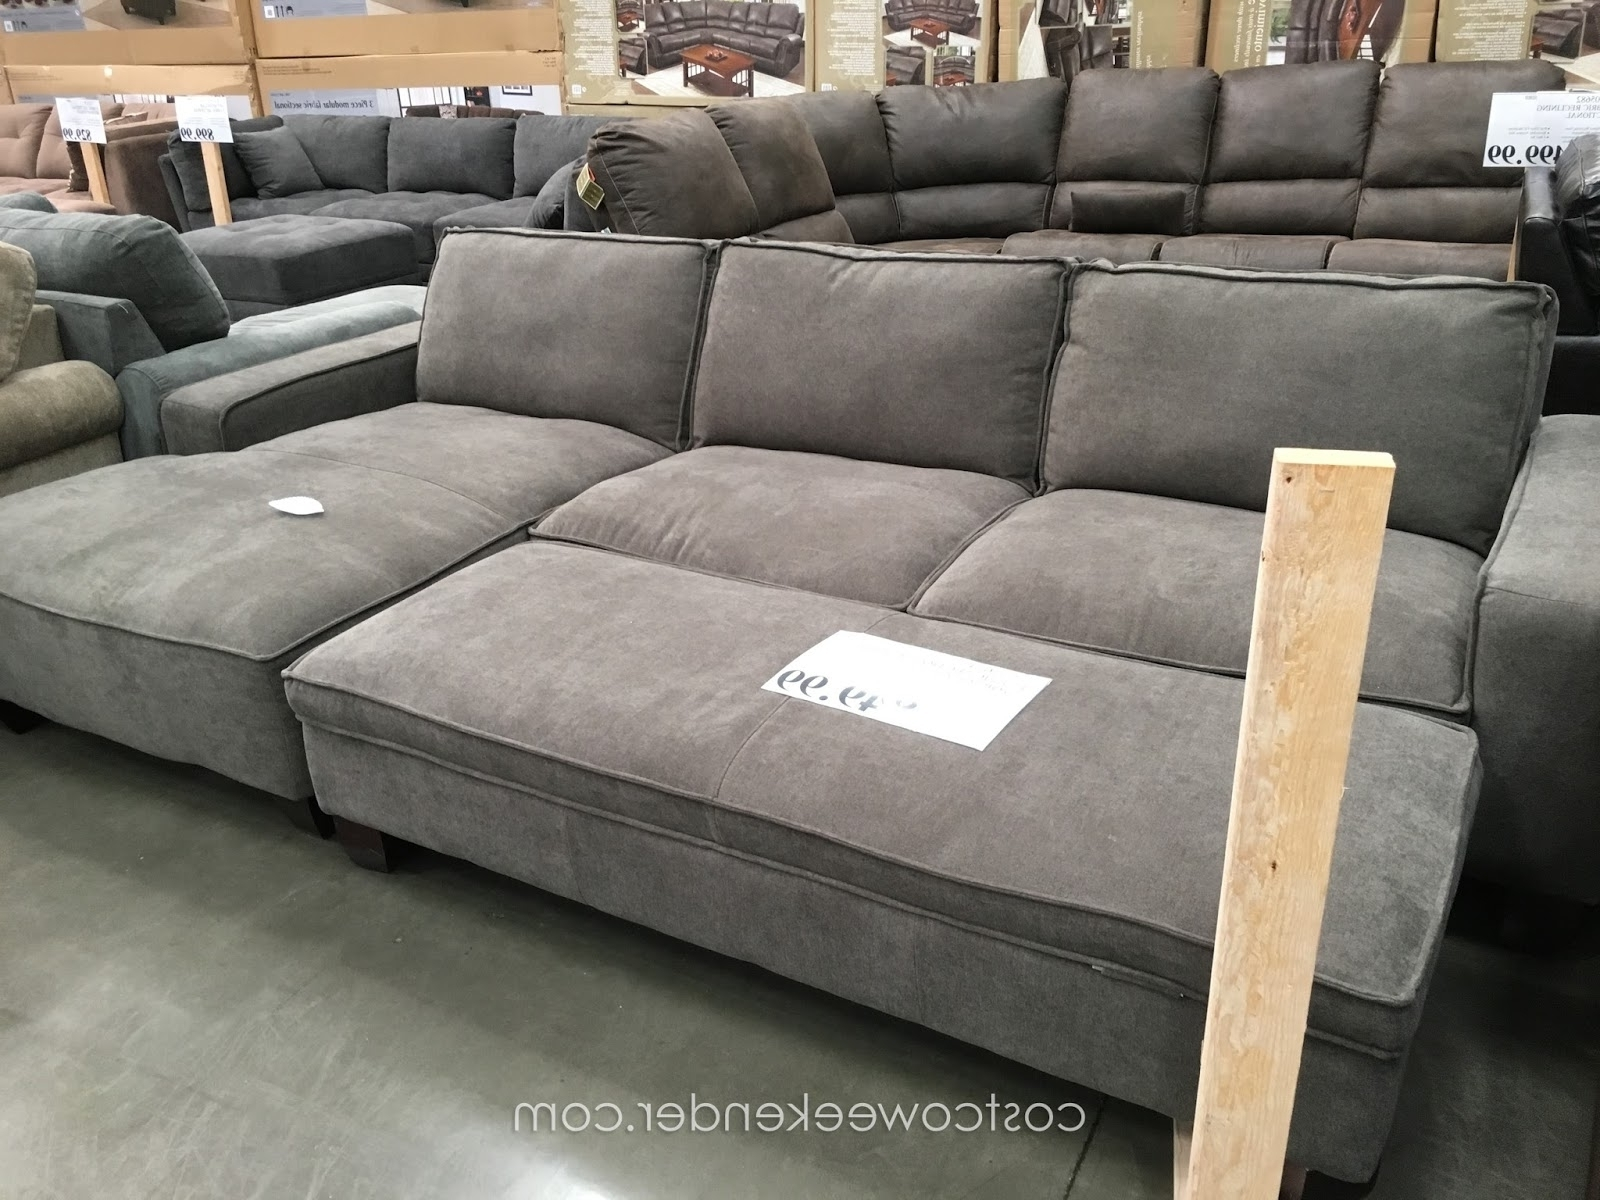 Most Current Sectional Sofas At Costco With Regard To Costco Sleeper Sofa With Chaise – Mariaalcocer (View 7 of 15)